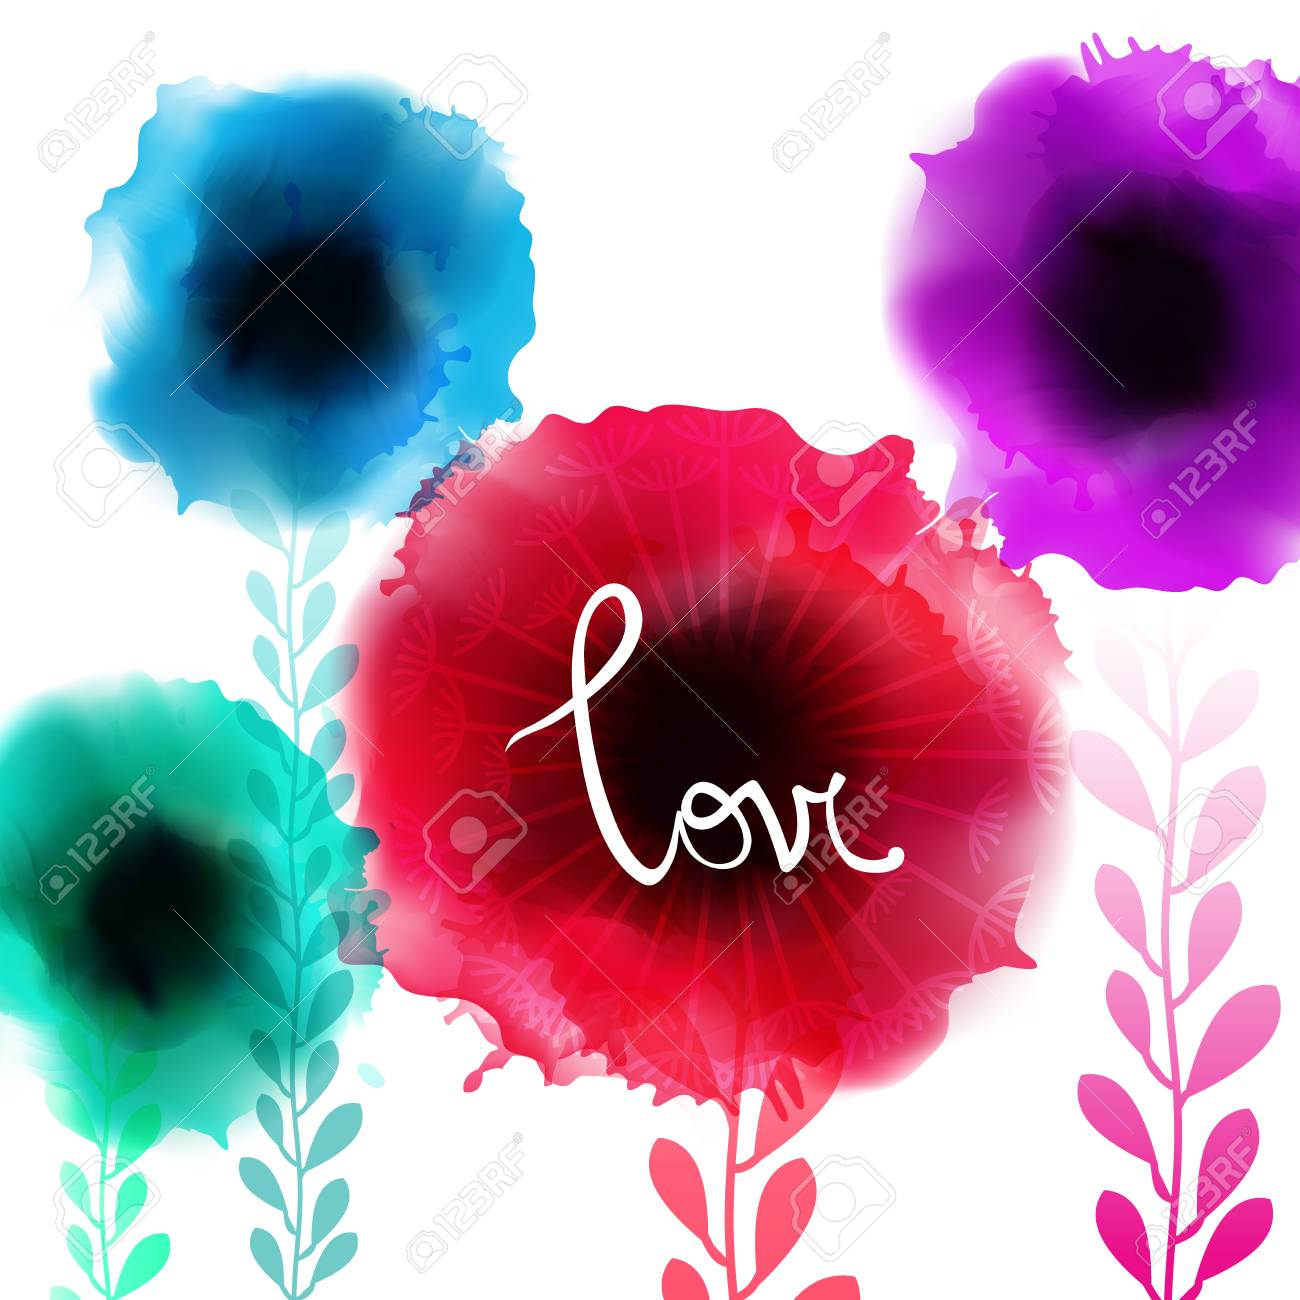 Watercolor Romantic Blooming Poppy Flowers Isolated Vector